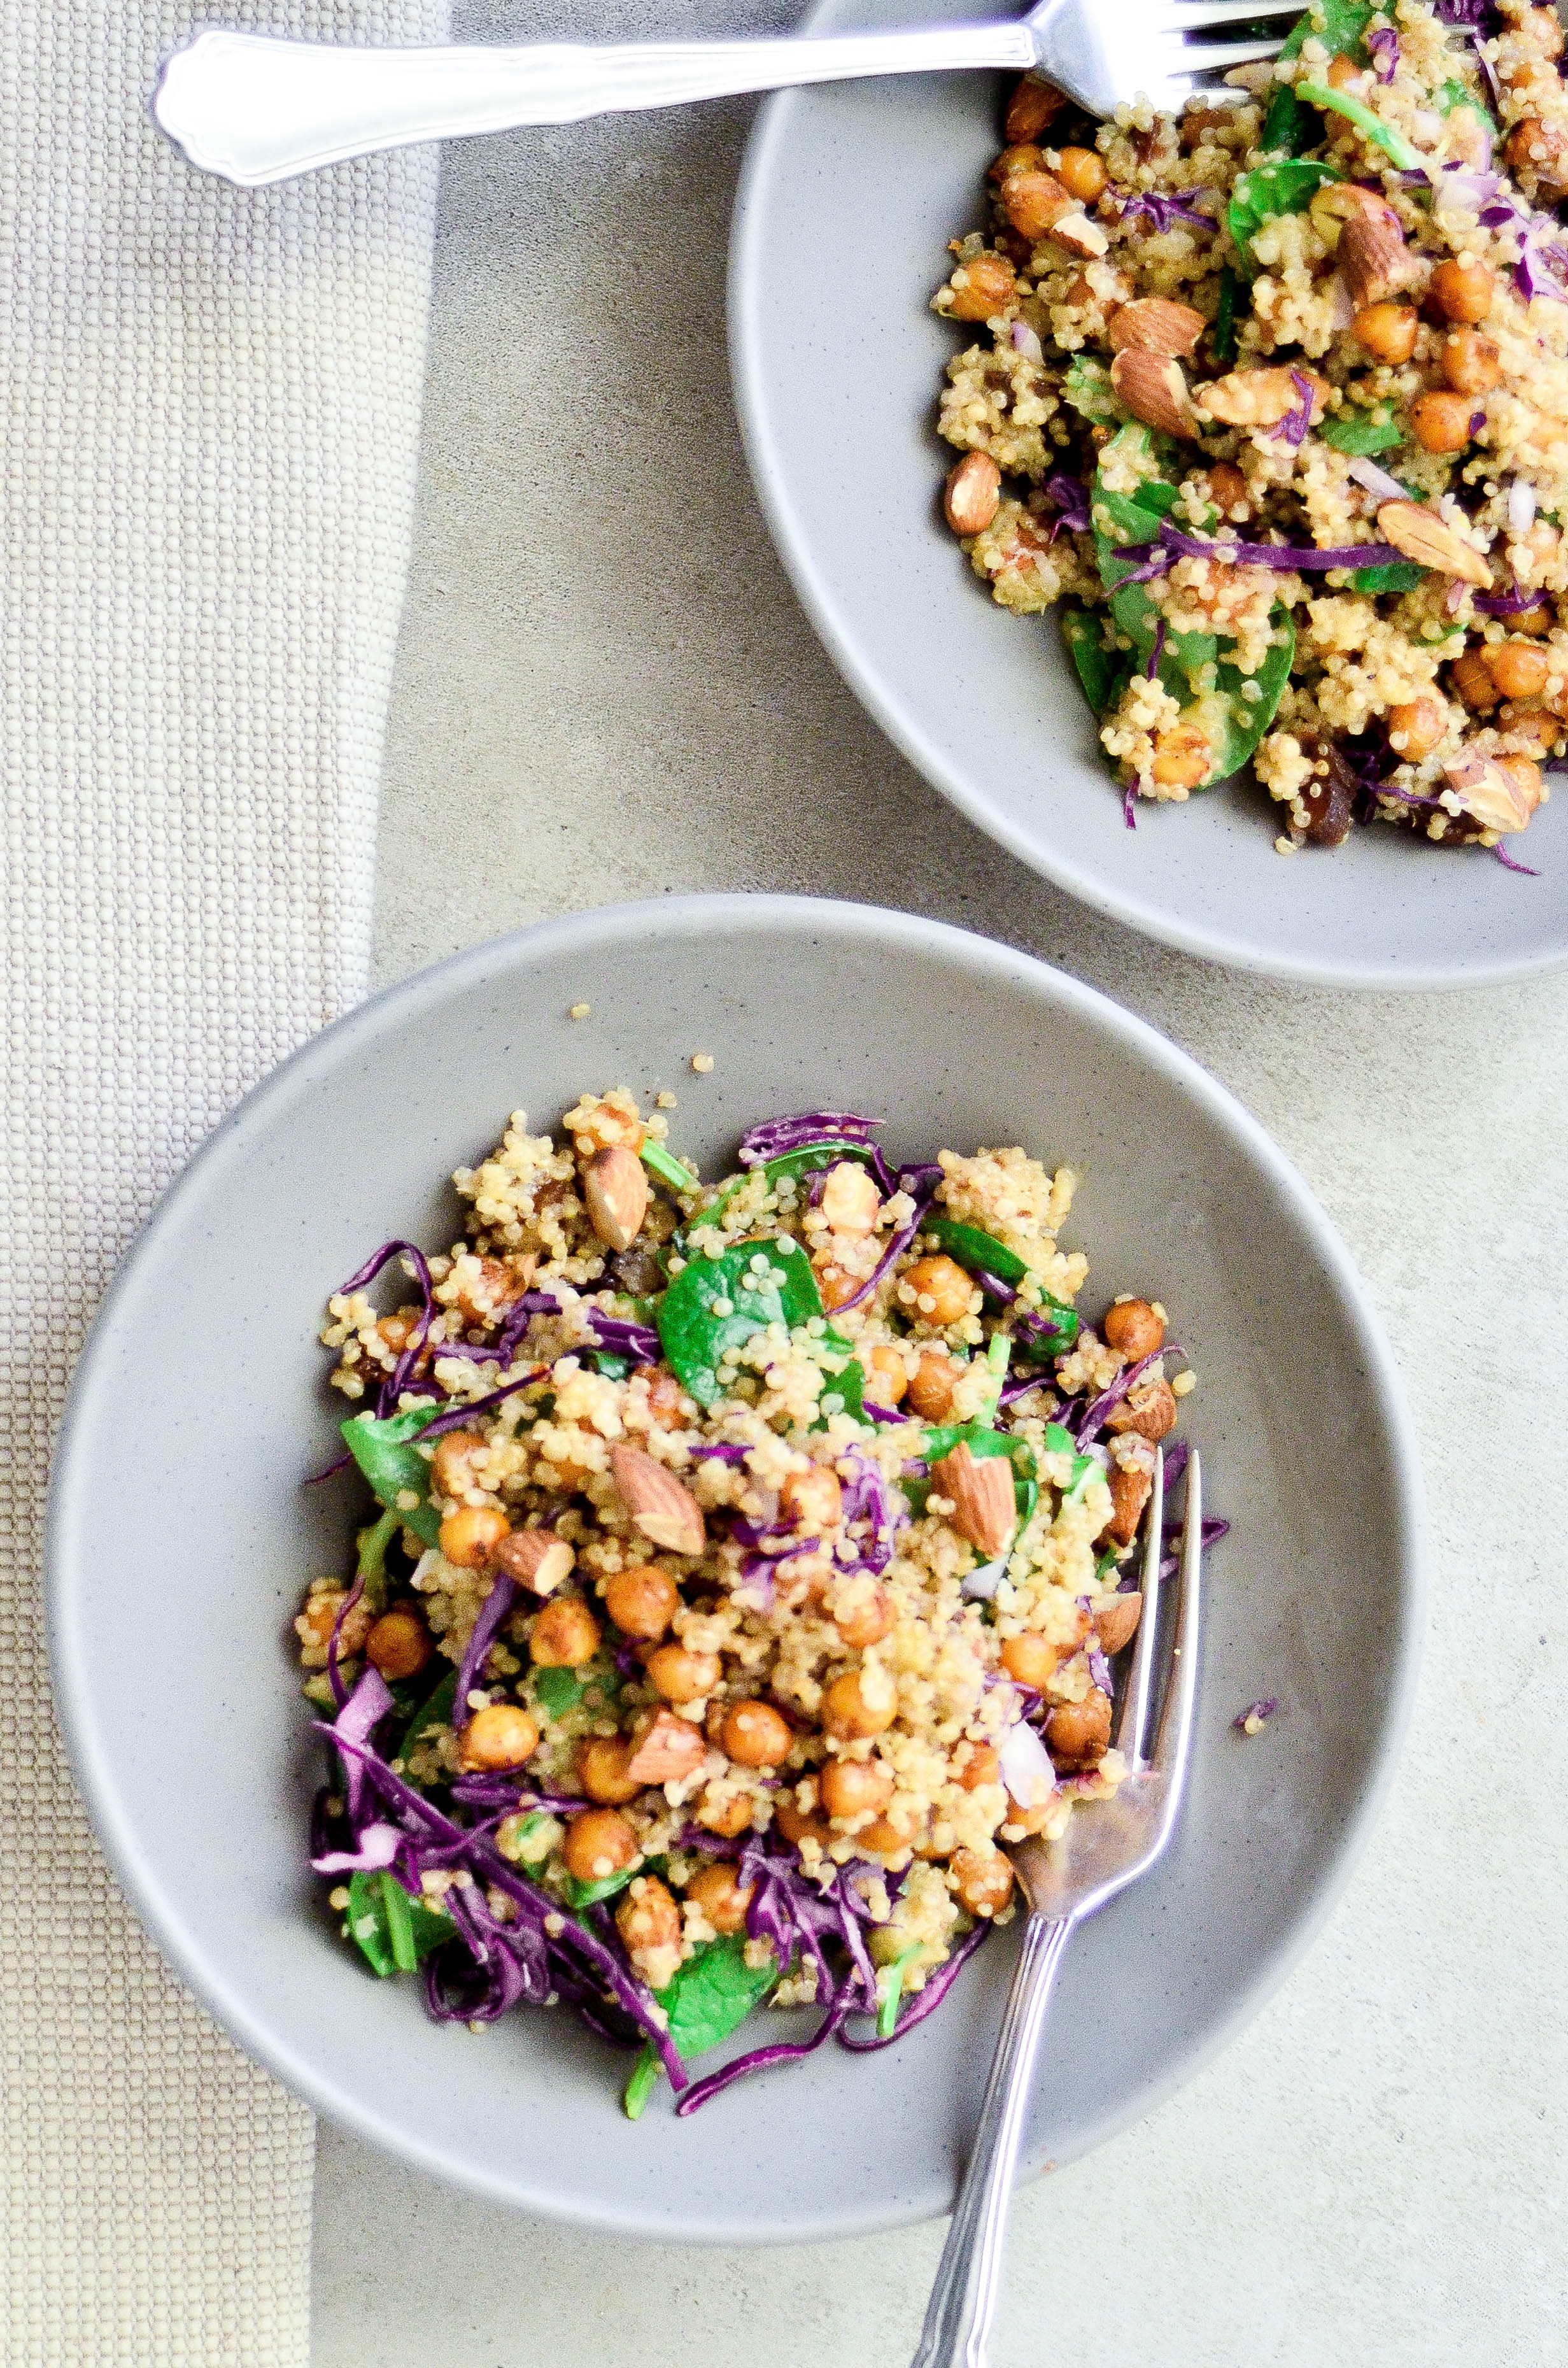 Warm quinoa salad with garbonzo beans